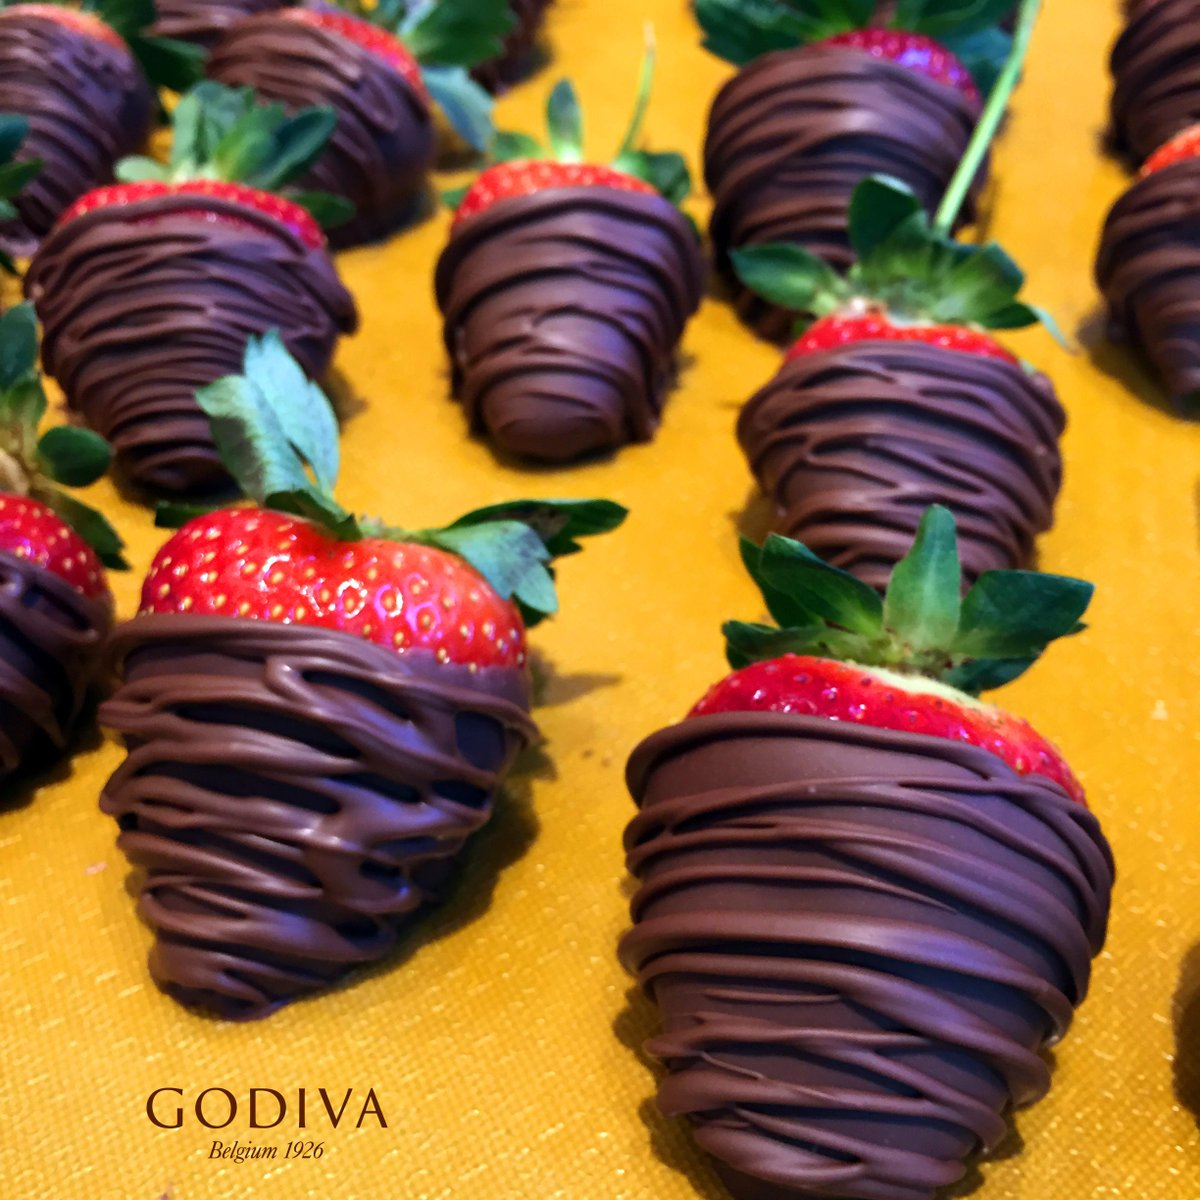 There are no overtime miracles on #ValentinesDay, but there is same-day delivery from GODIVA: http://t.co/8YQg1vO2fn http://t.co/spgqx4mJpM